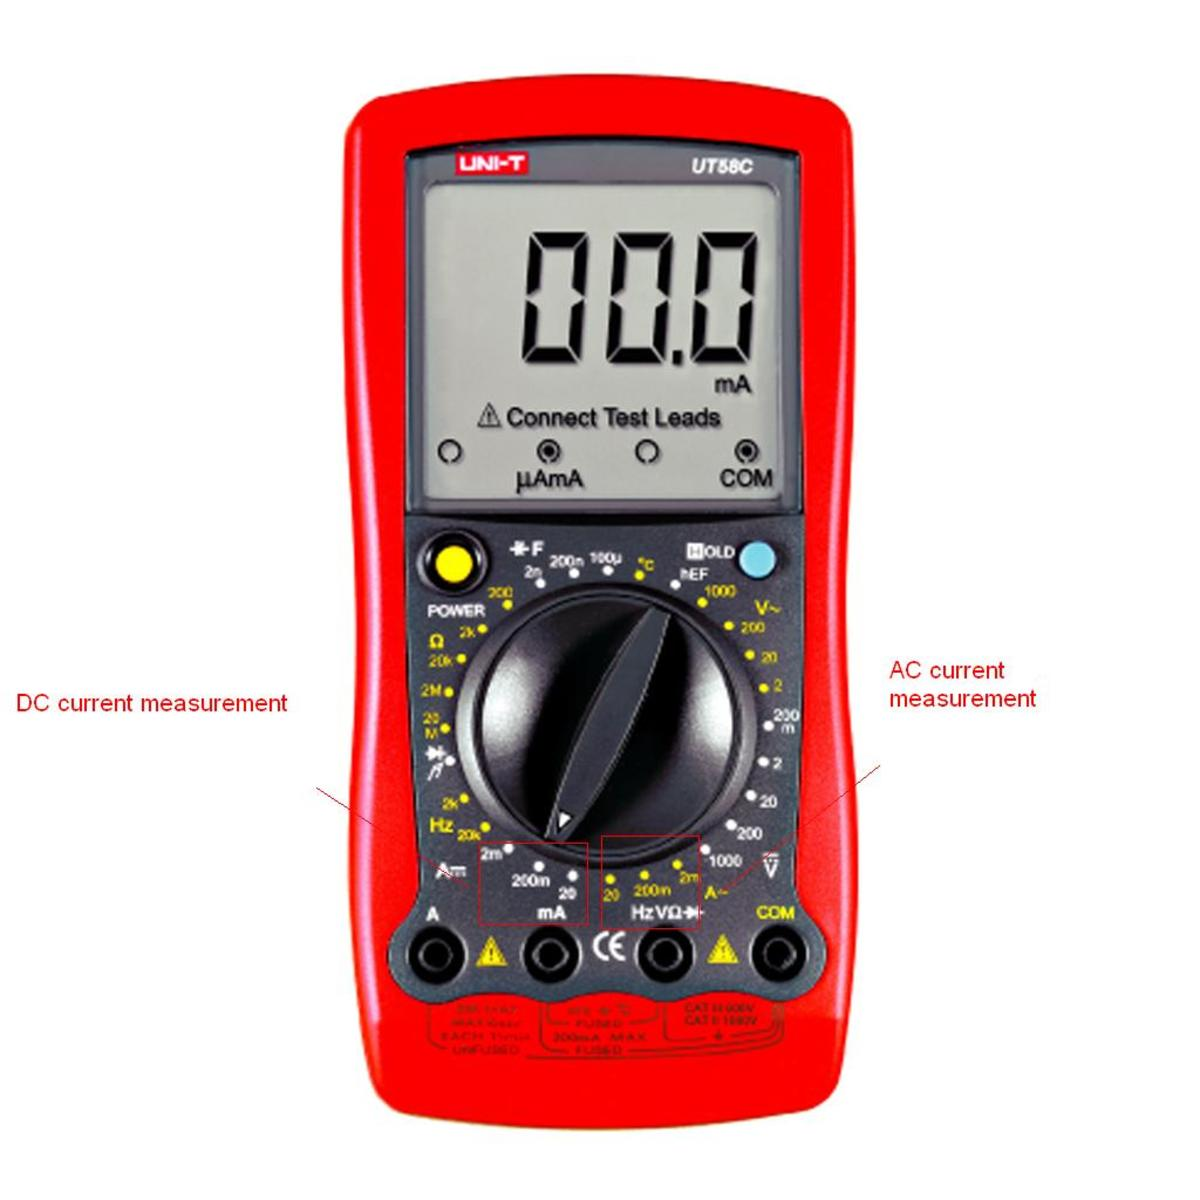 A UT58C digital multimeter - the DC current values are located at the left, and the AC current values at the right.